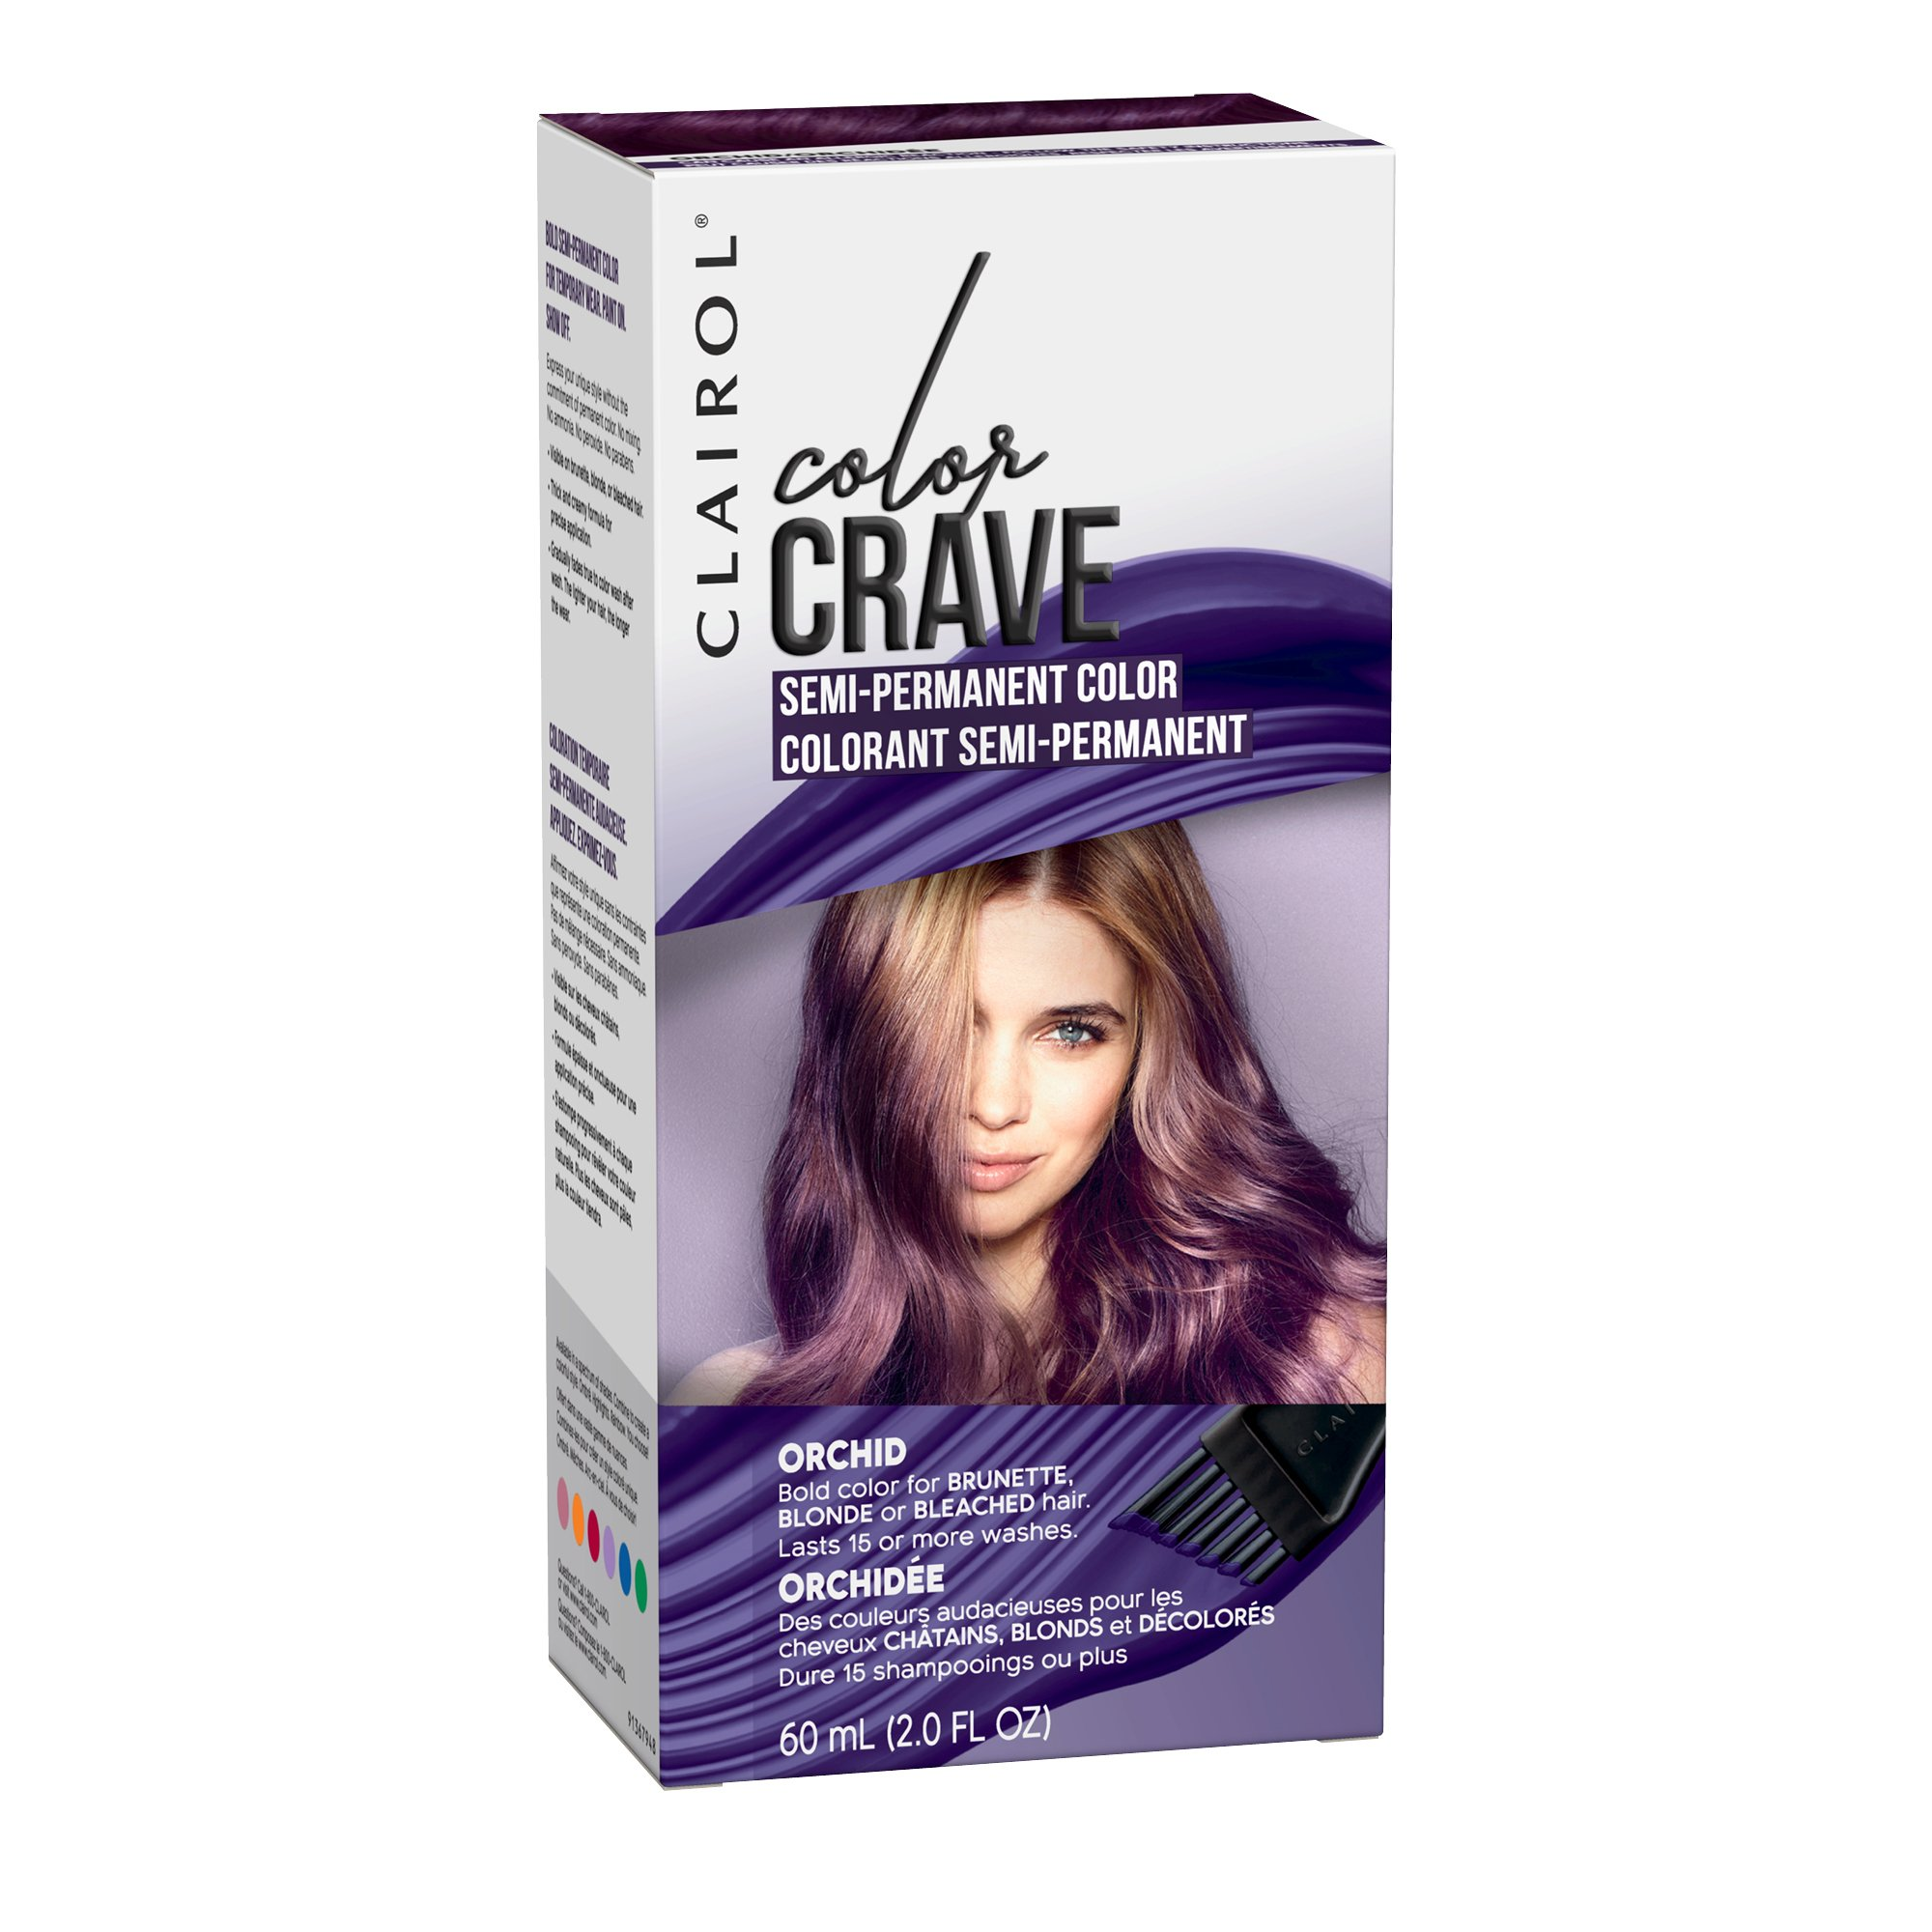 2019 year for women- Permanent Semi hair color purple